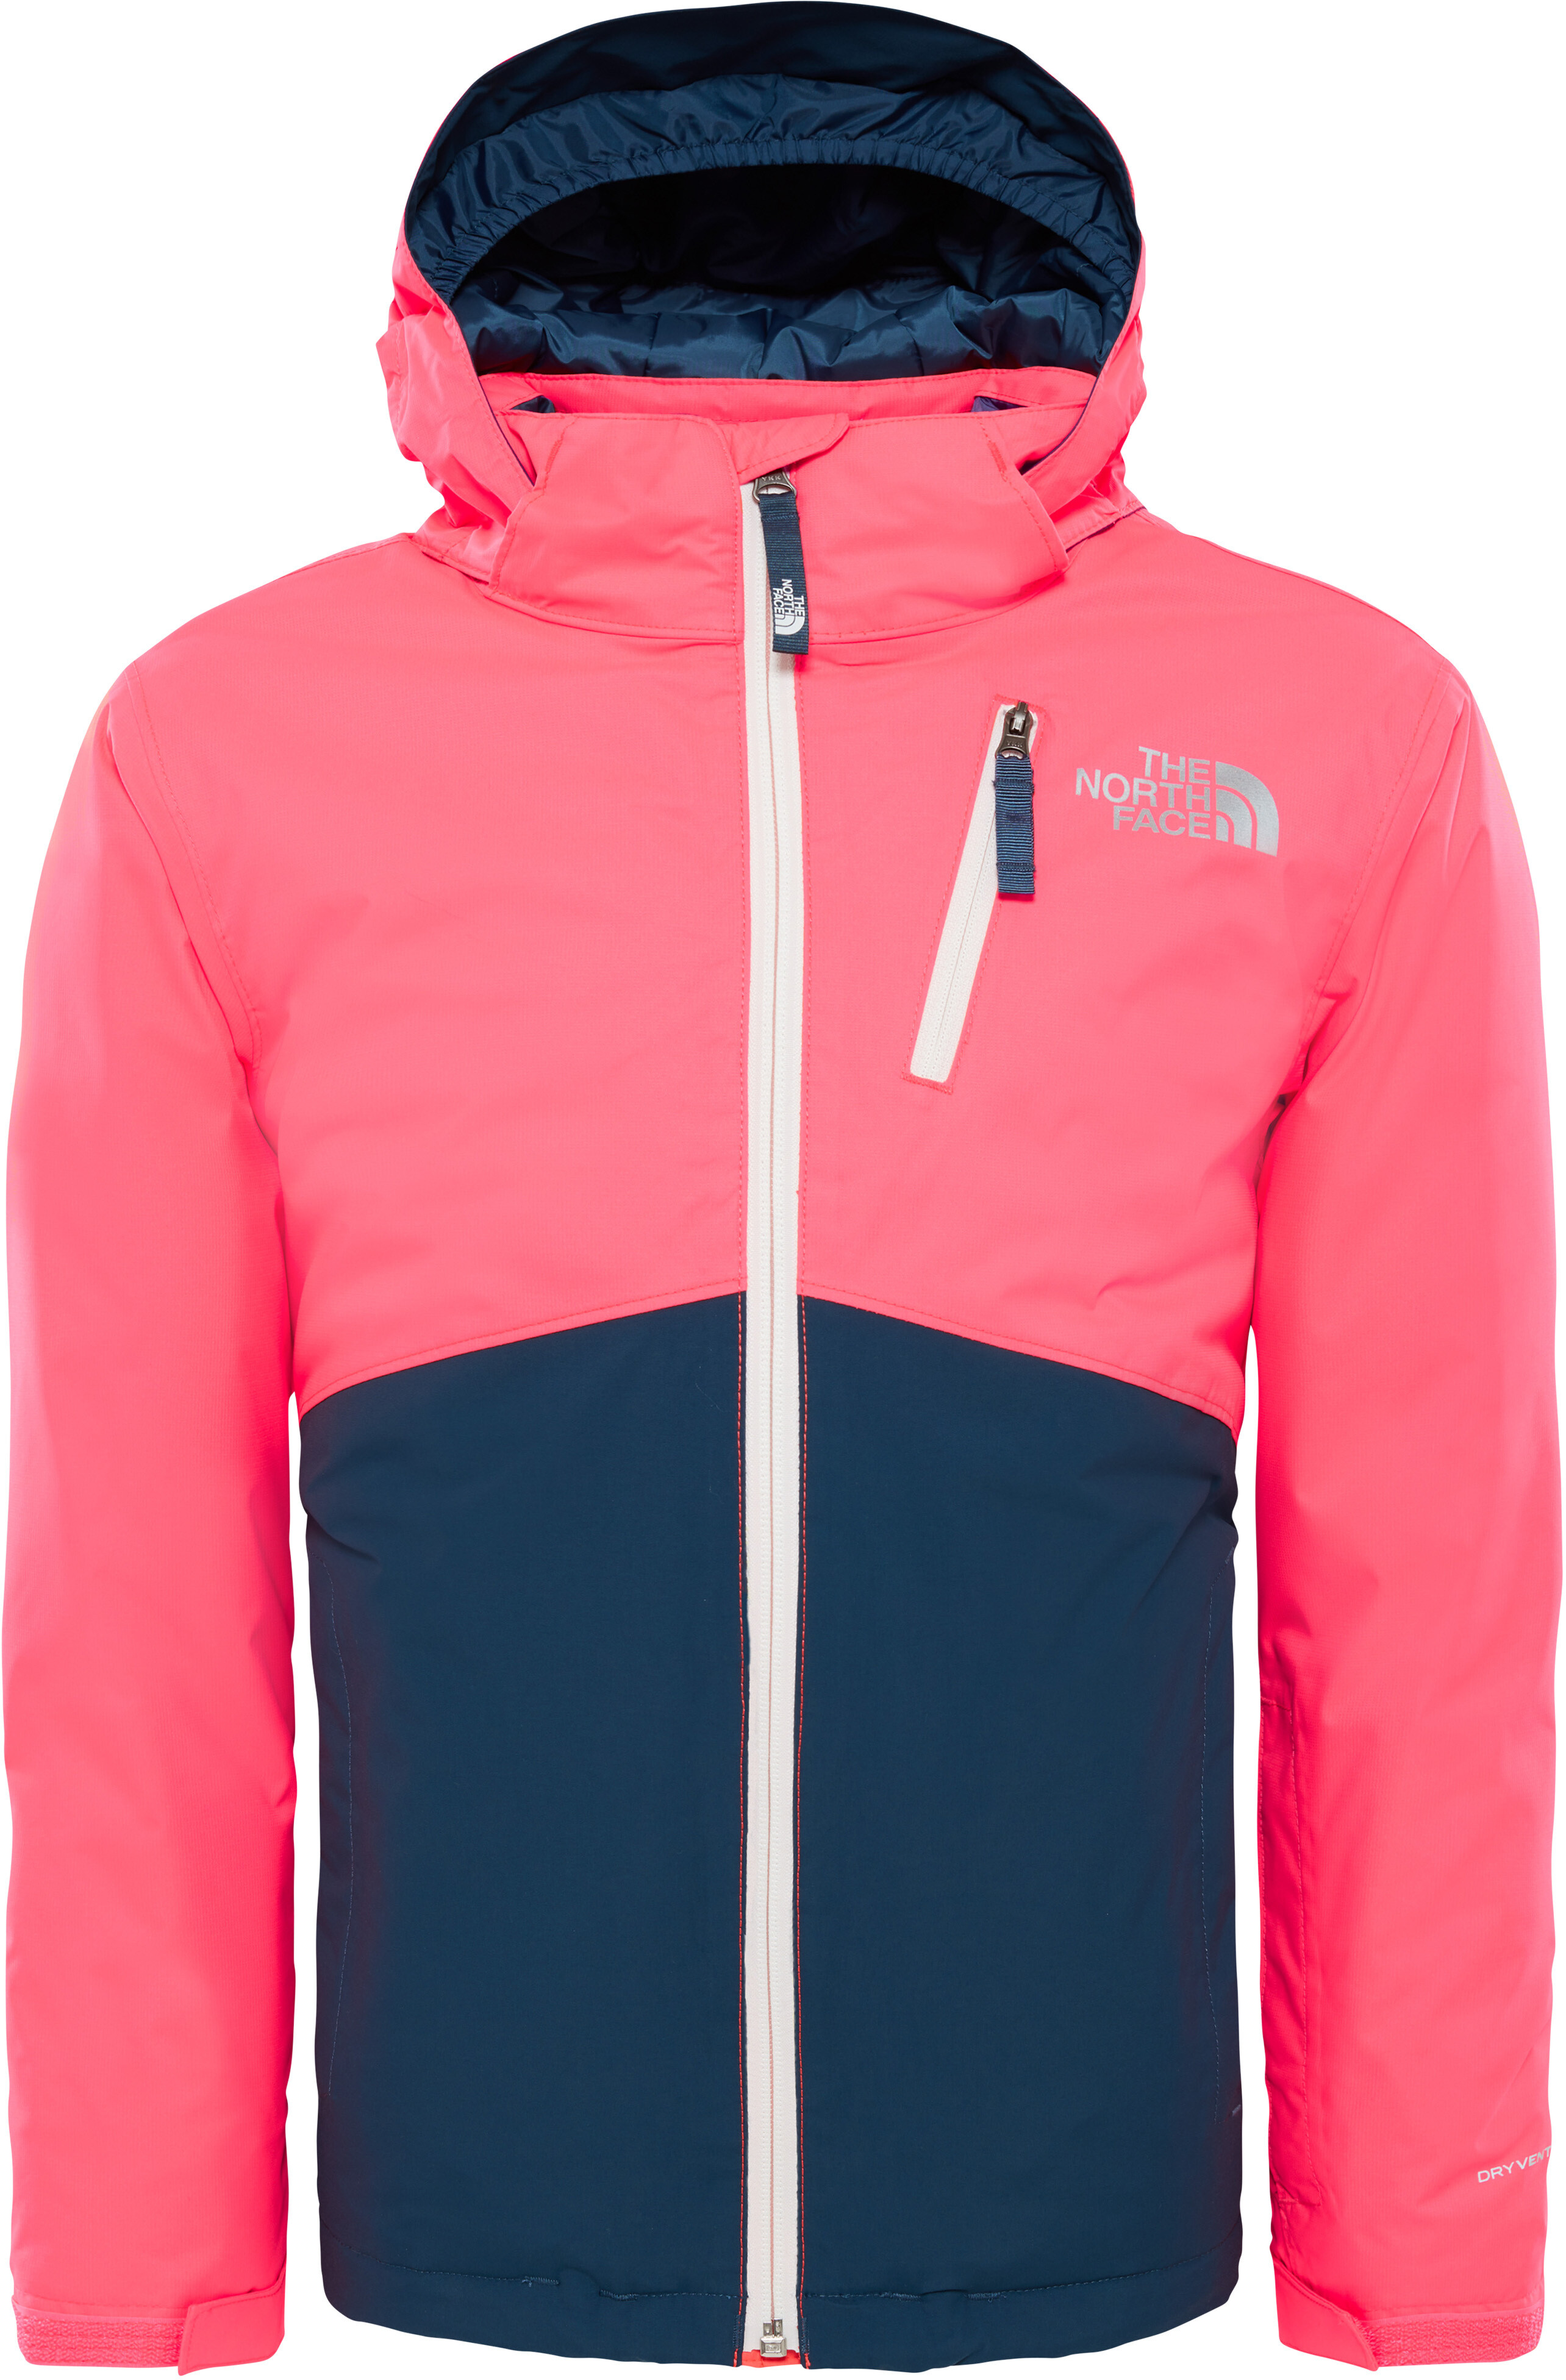 4936b61627 The North Face Snowdrift - Veste Enfant - rose/bleu sur CAMPZ !